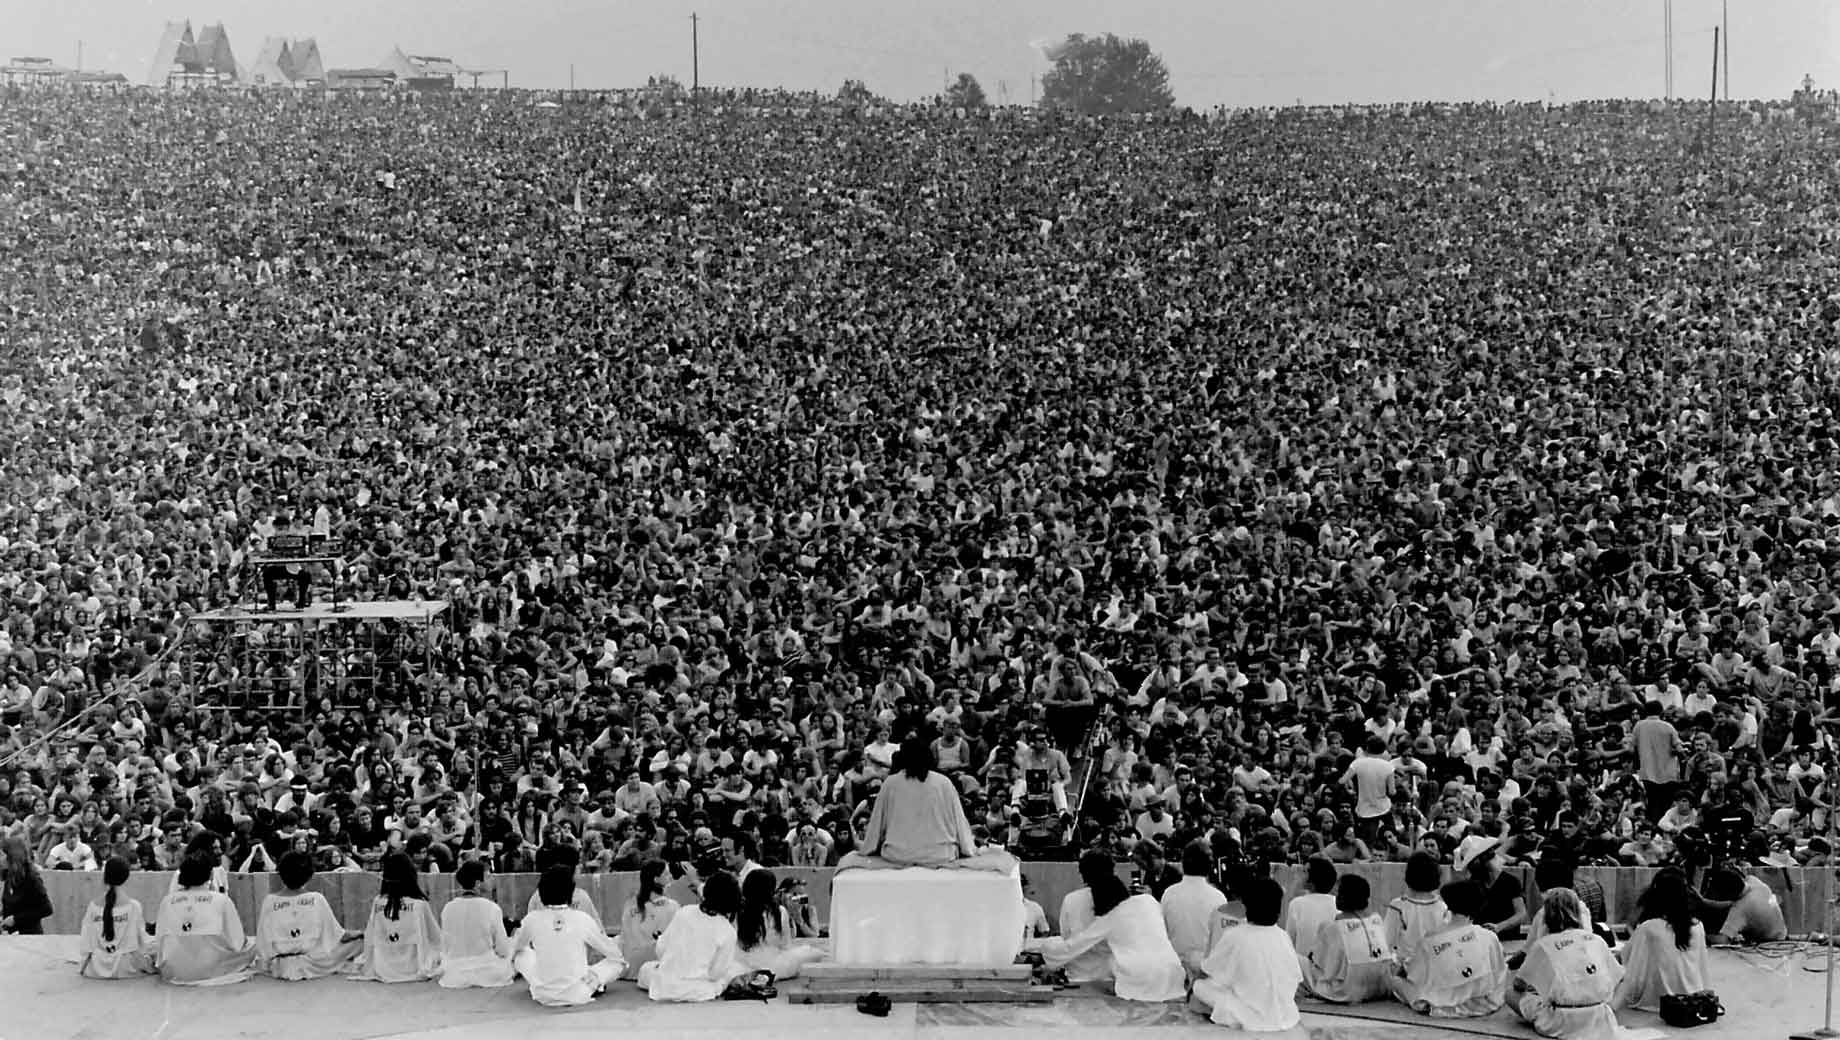 10 Major Social Changes in the 50 Years Since Woodstock